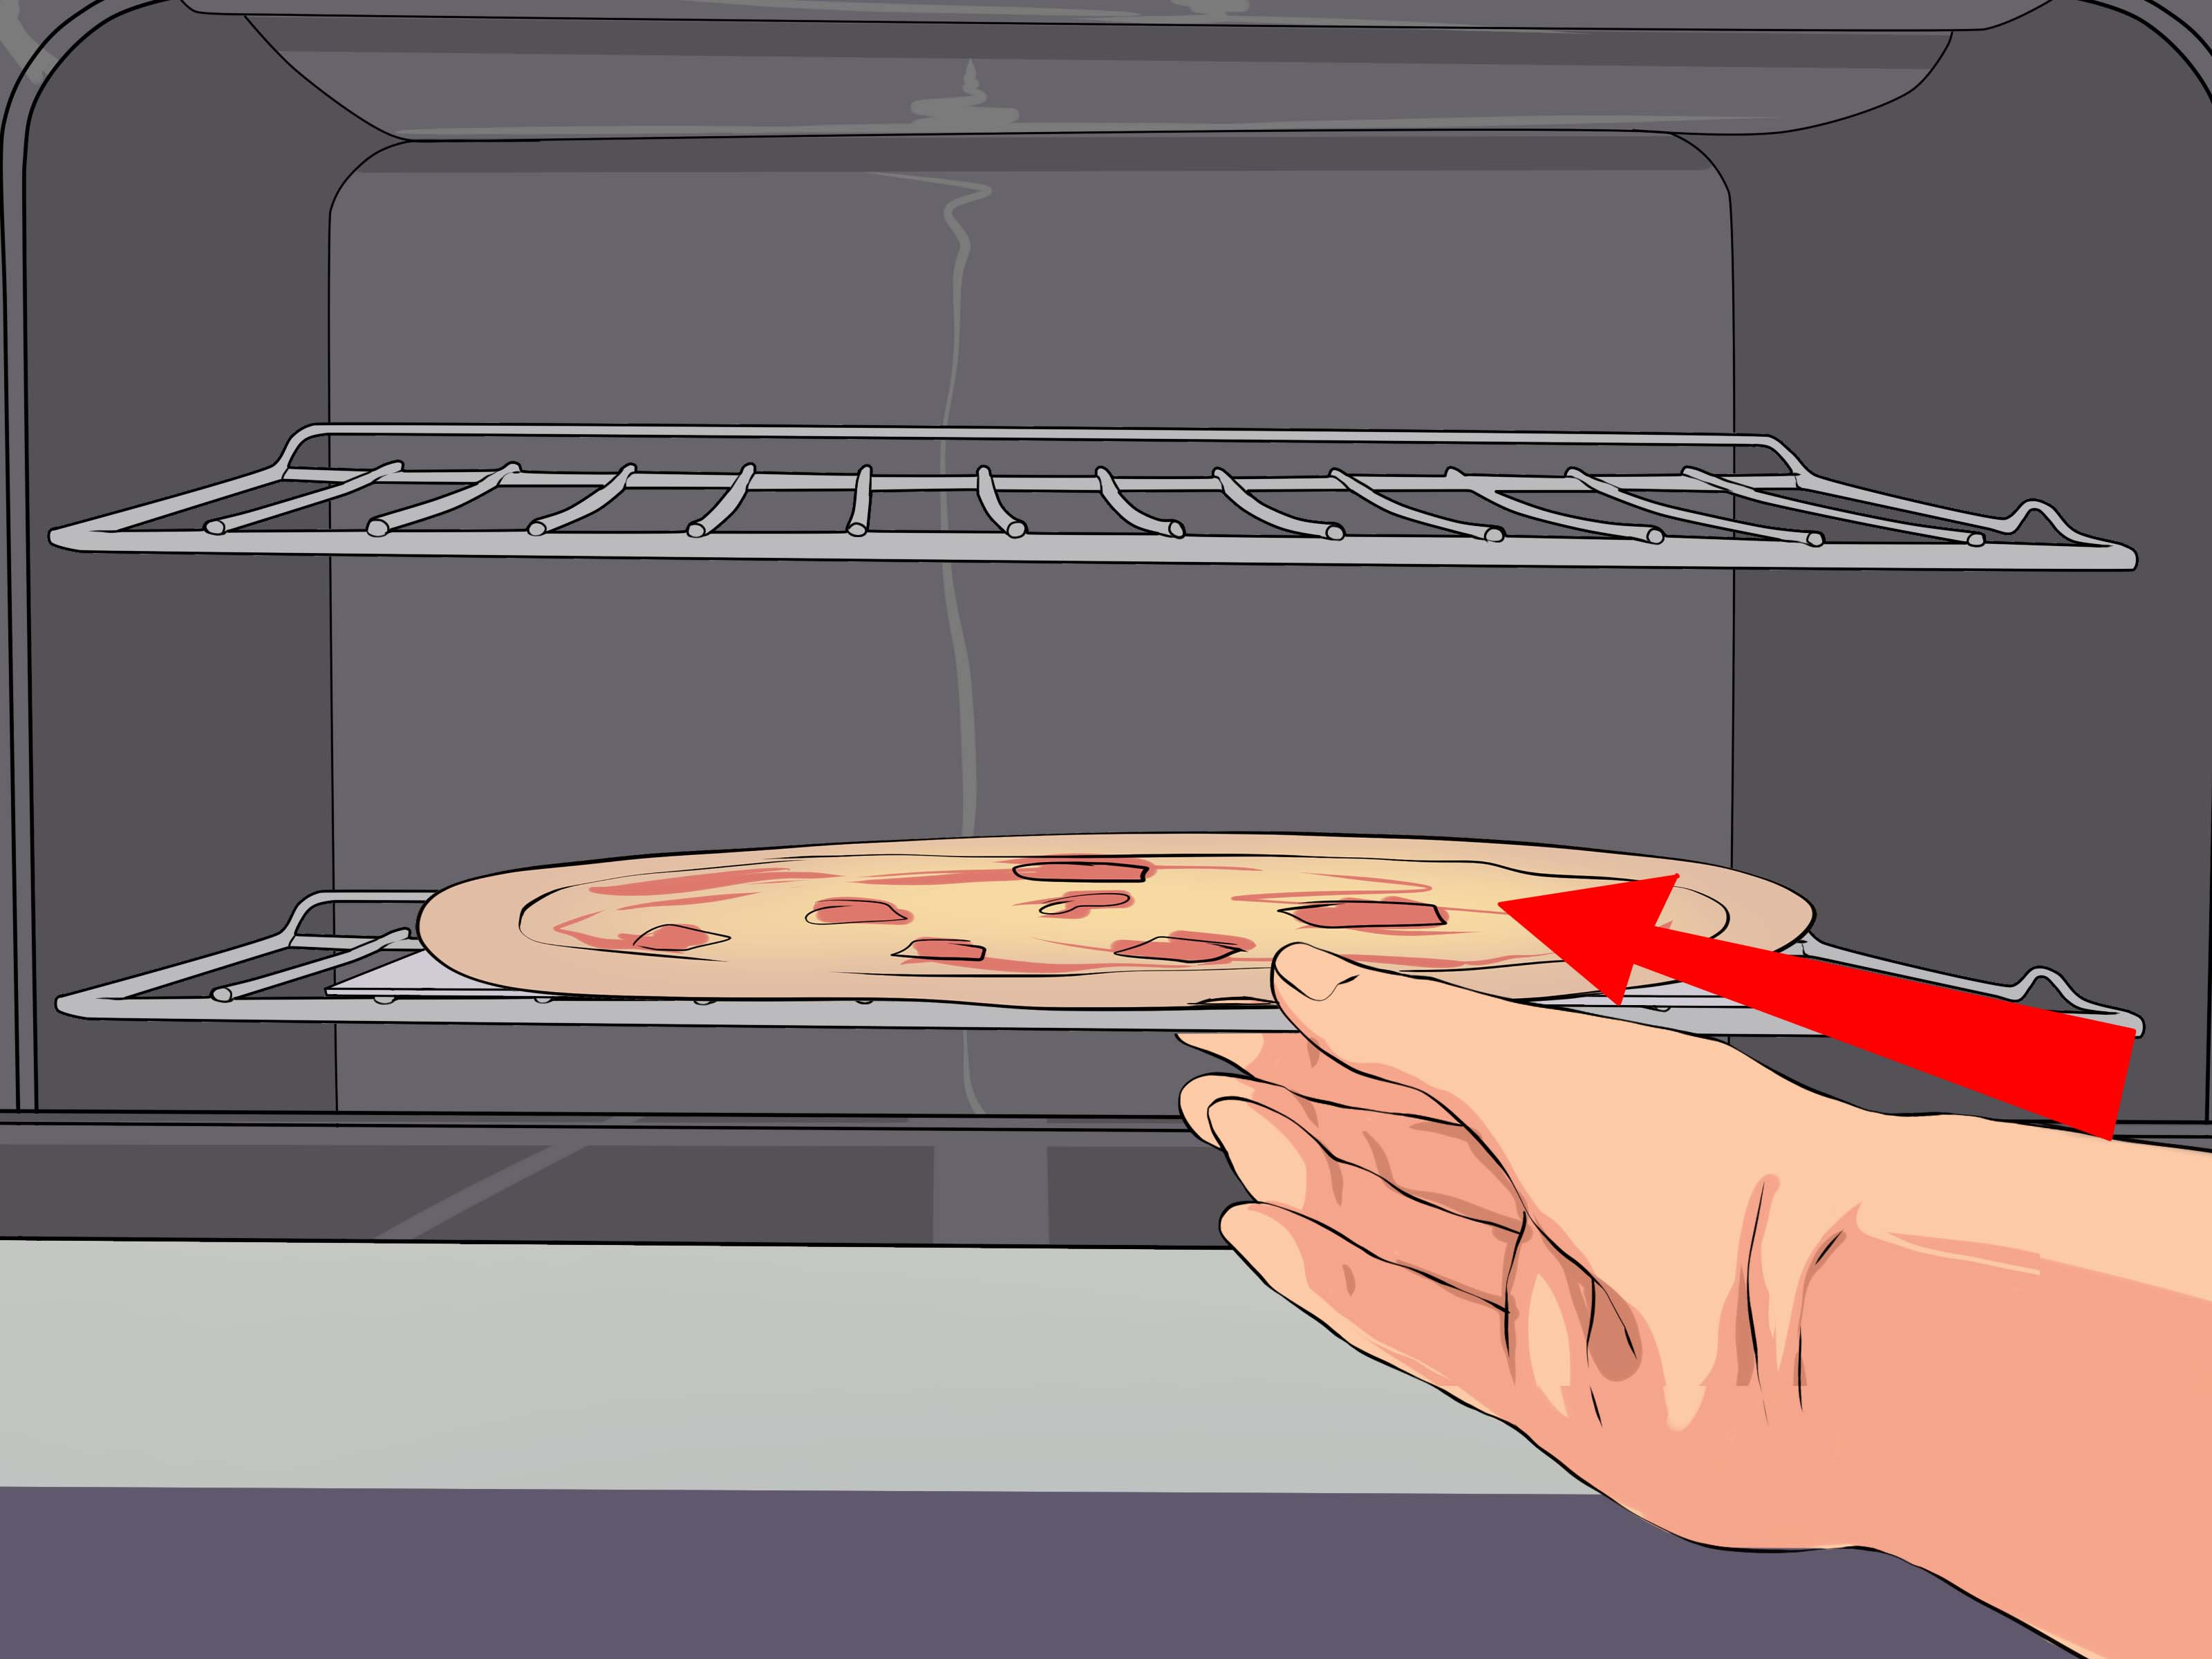 Gambar Oven Gas 3 Ways To Preheat An Oven Wikihow